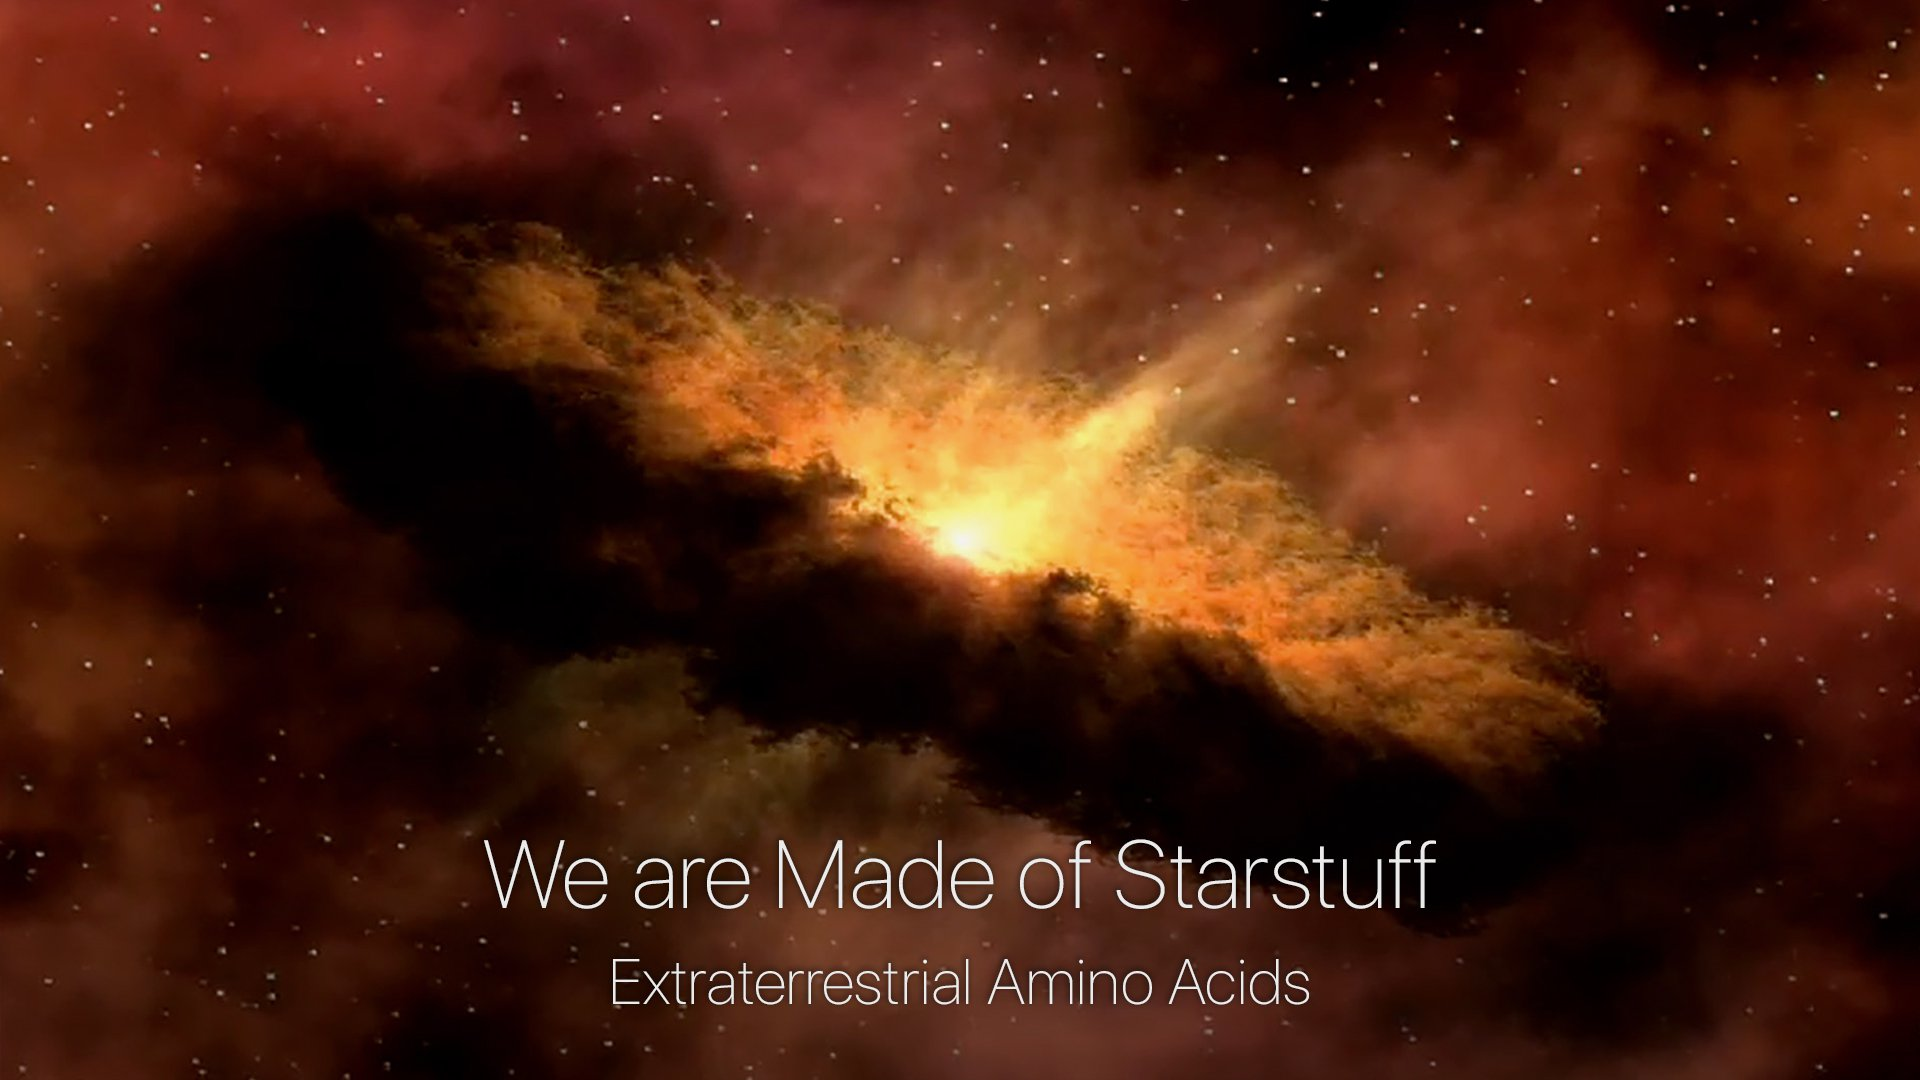 e are Made of Starstuff - Extraterrestrial Amino Acids from the Fourth Edition